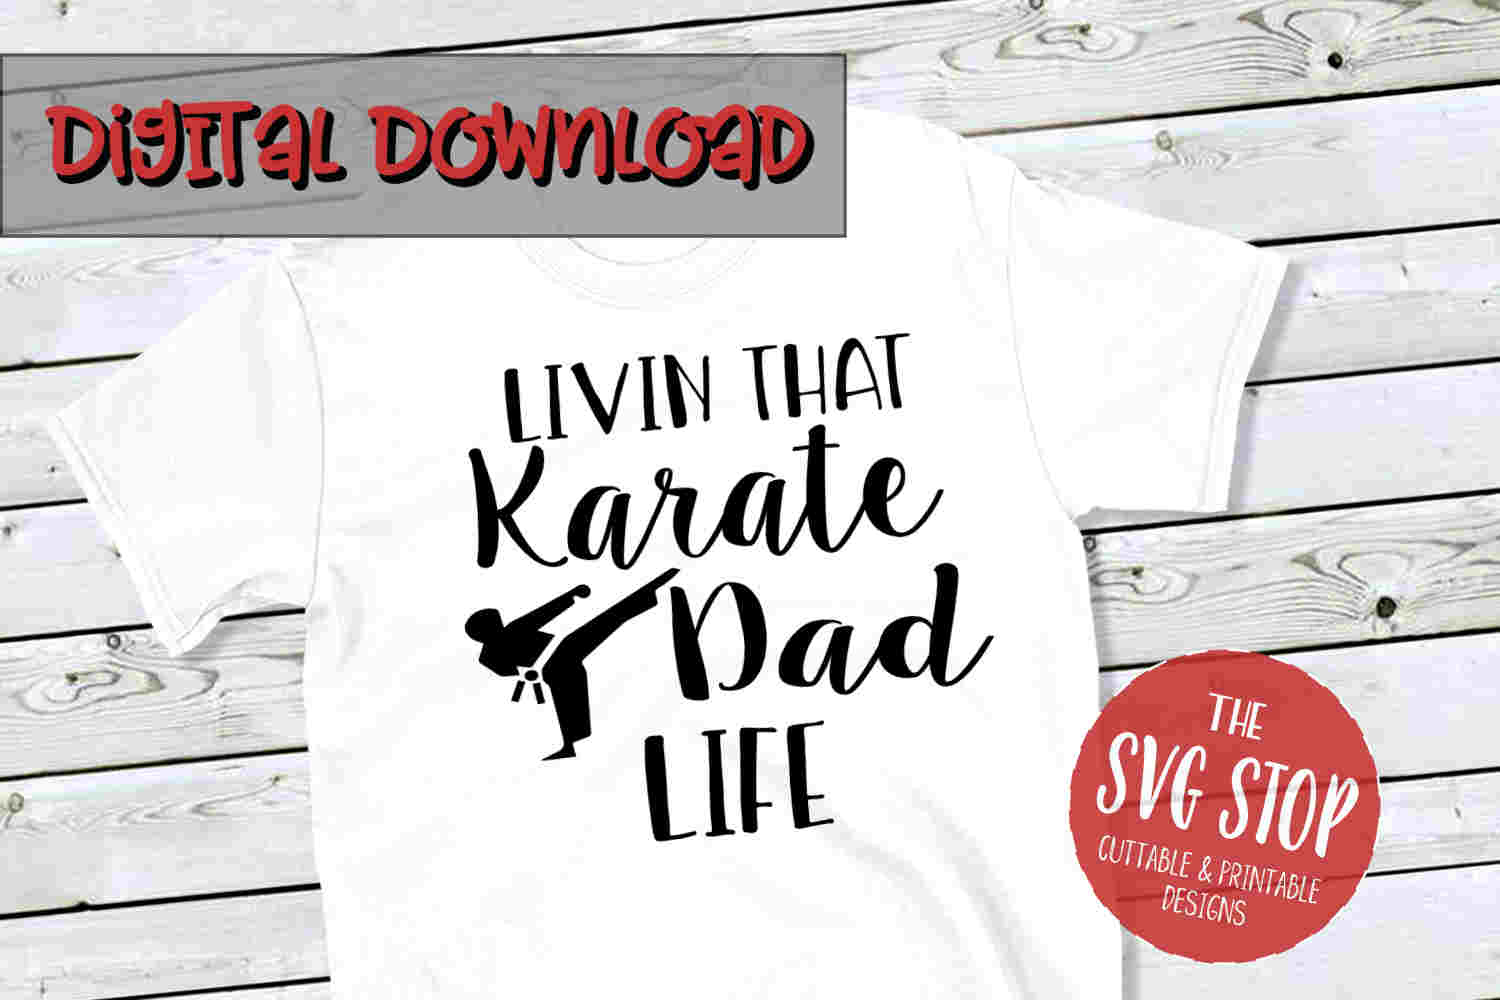 Karate Dad -SVG, PNG, DXF example image 1